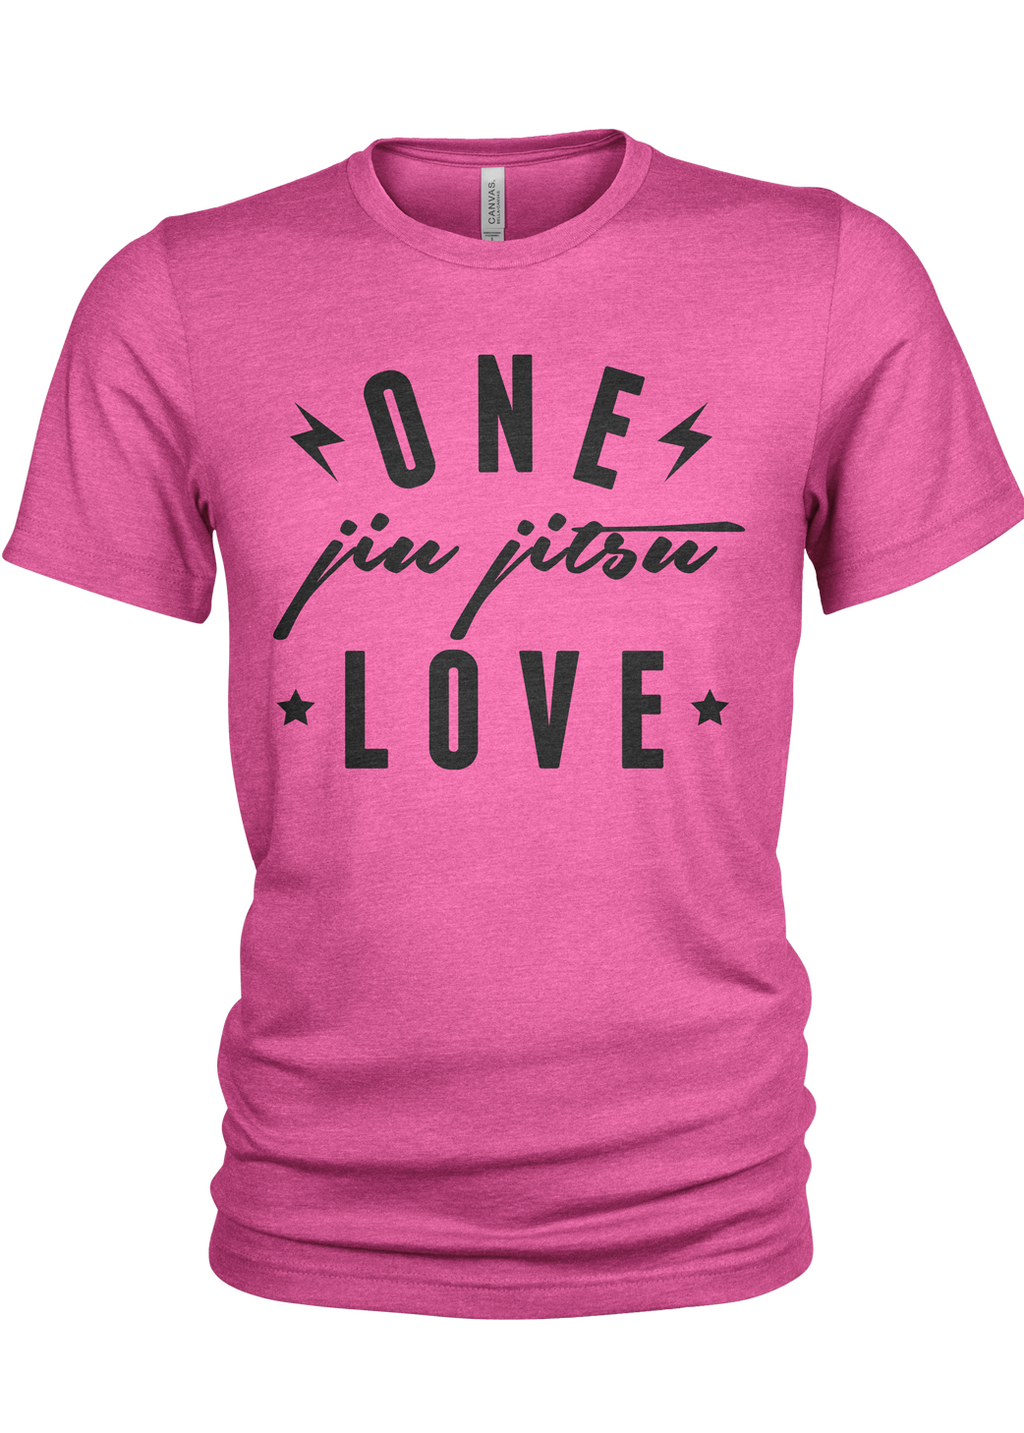 One Love men's t-shirt (hot pink)